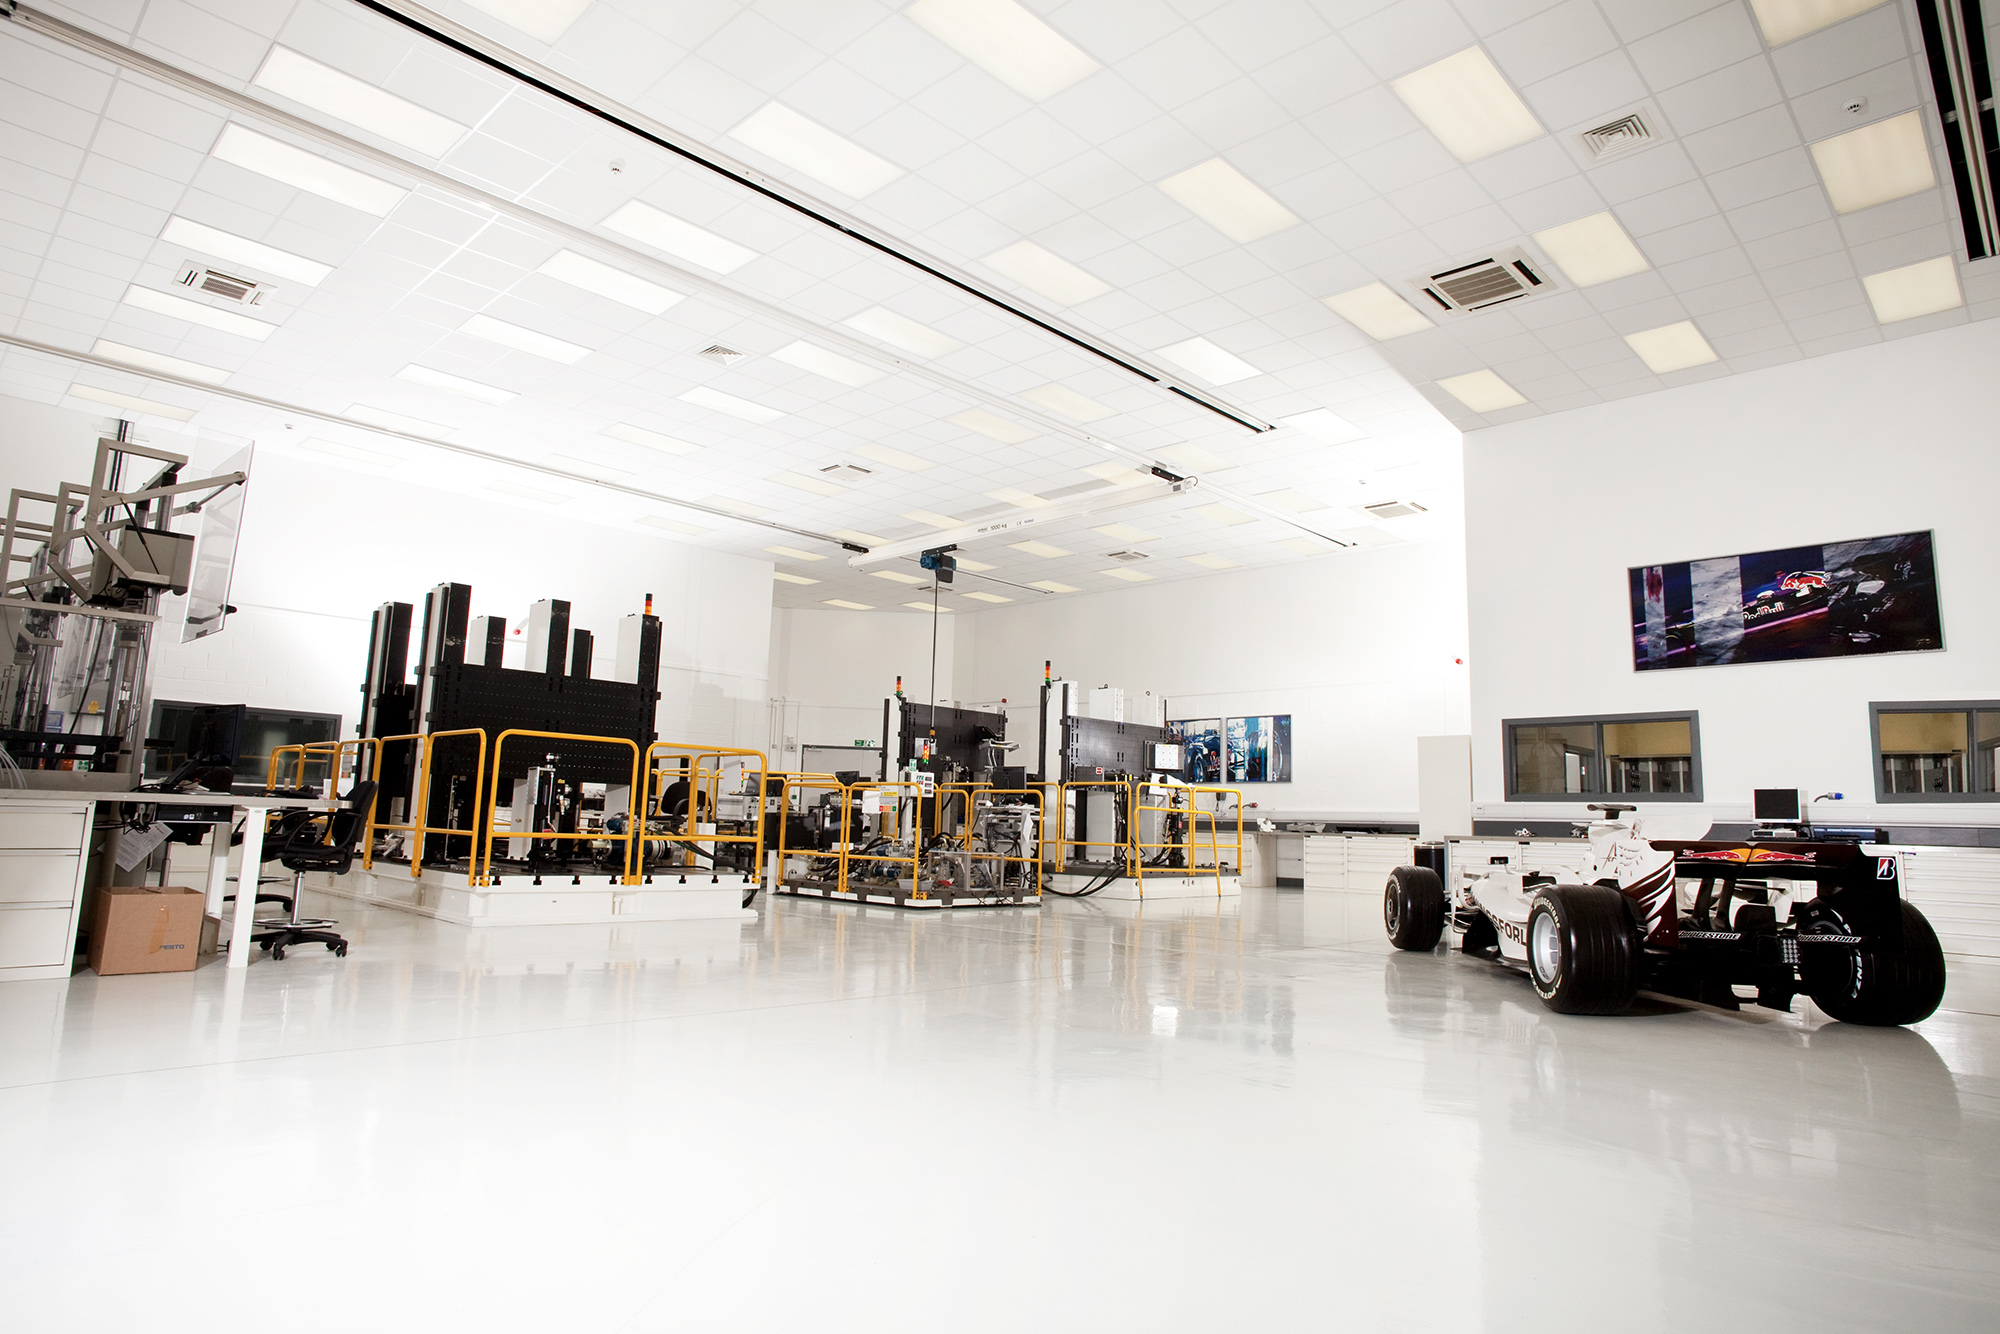 View of the Red Bull Formula 1 factory